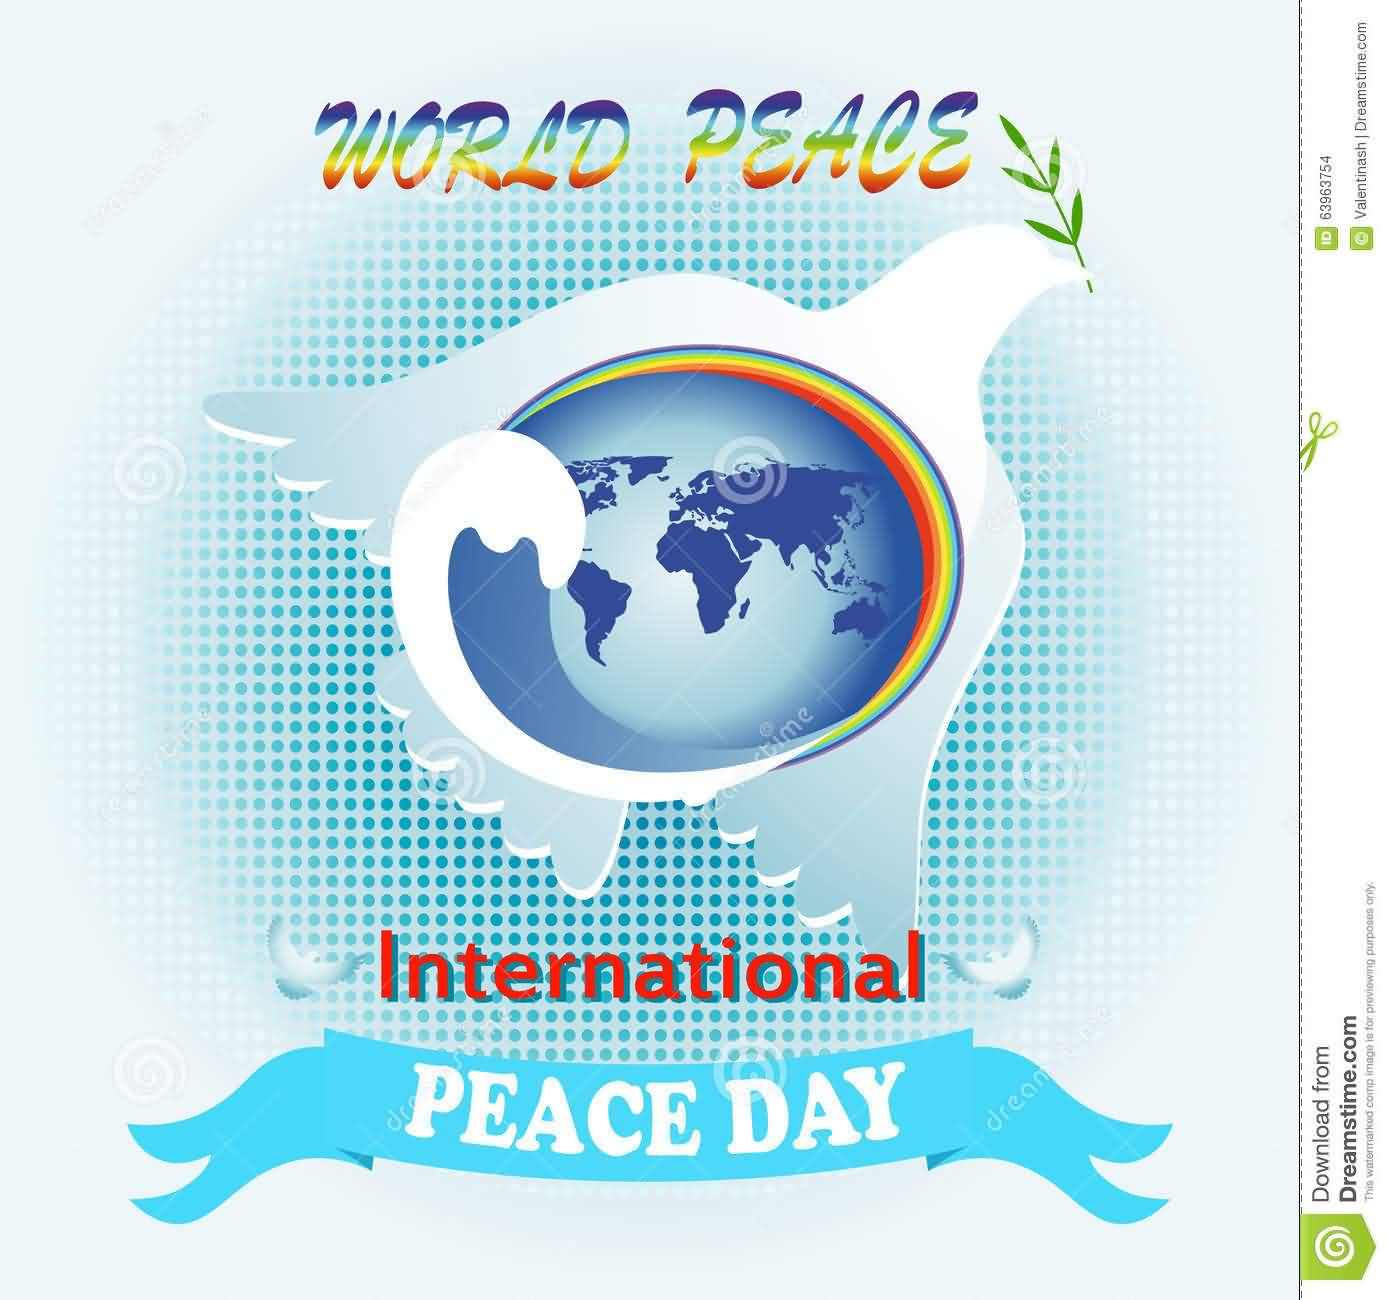 144-International Peace Day Wishes